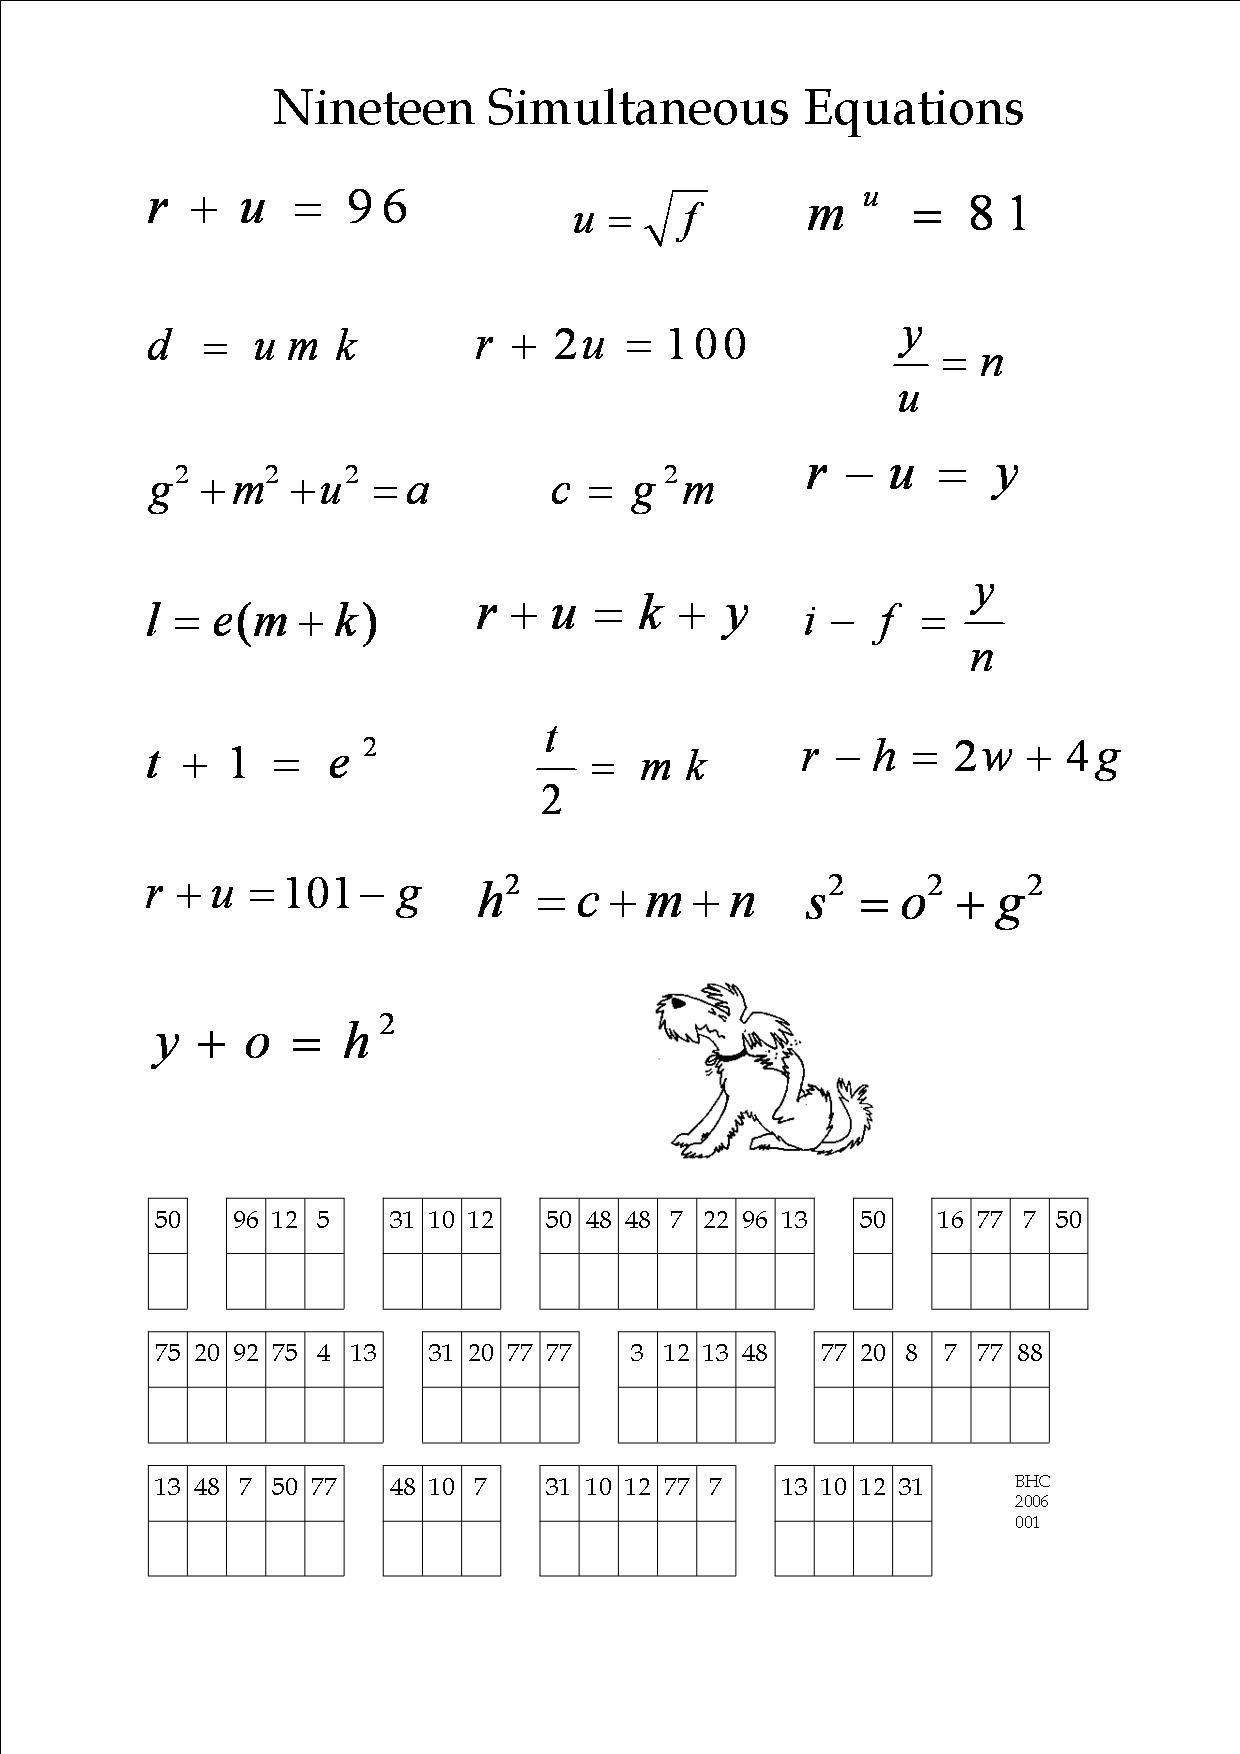 6th Grade Math Puzzle Worksheets Math Puzzle Worksheets In